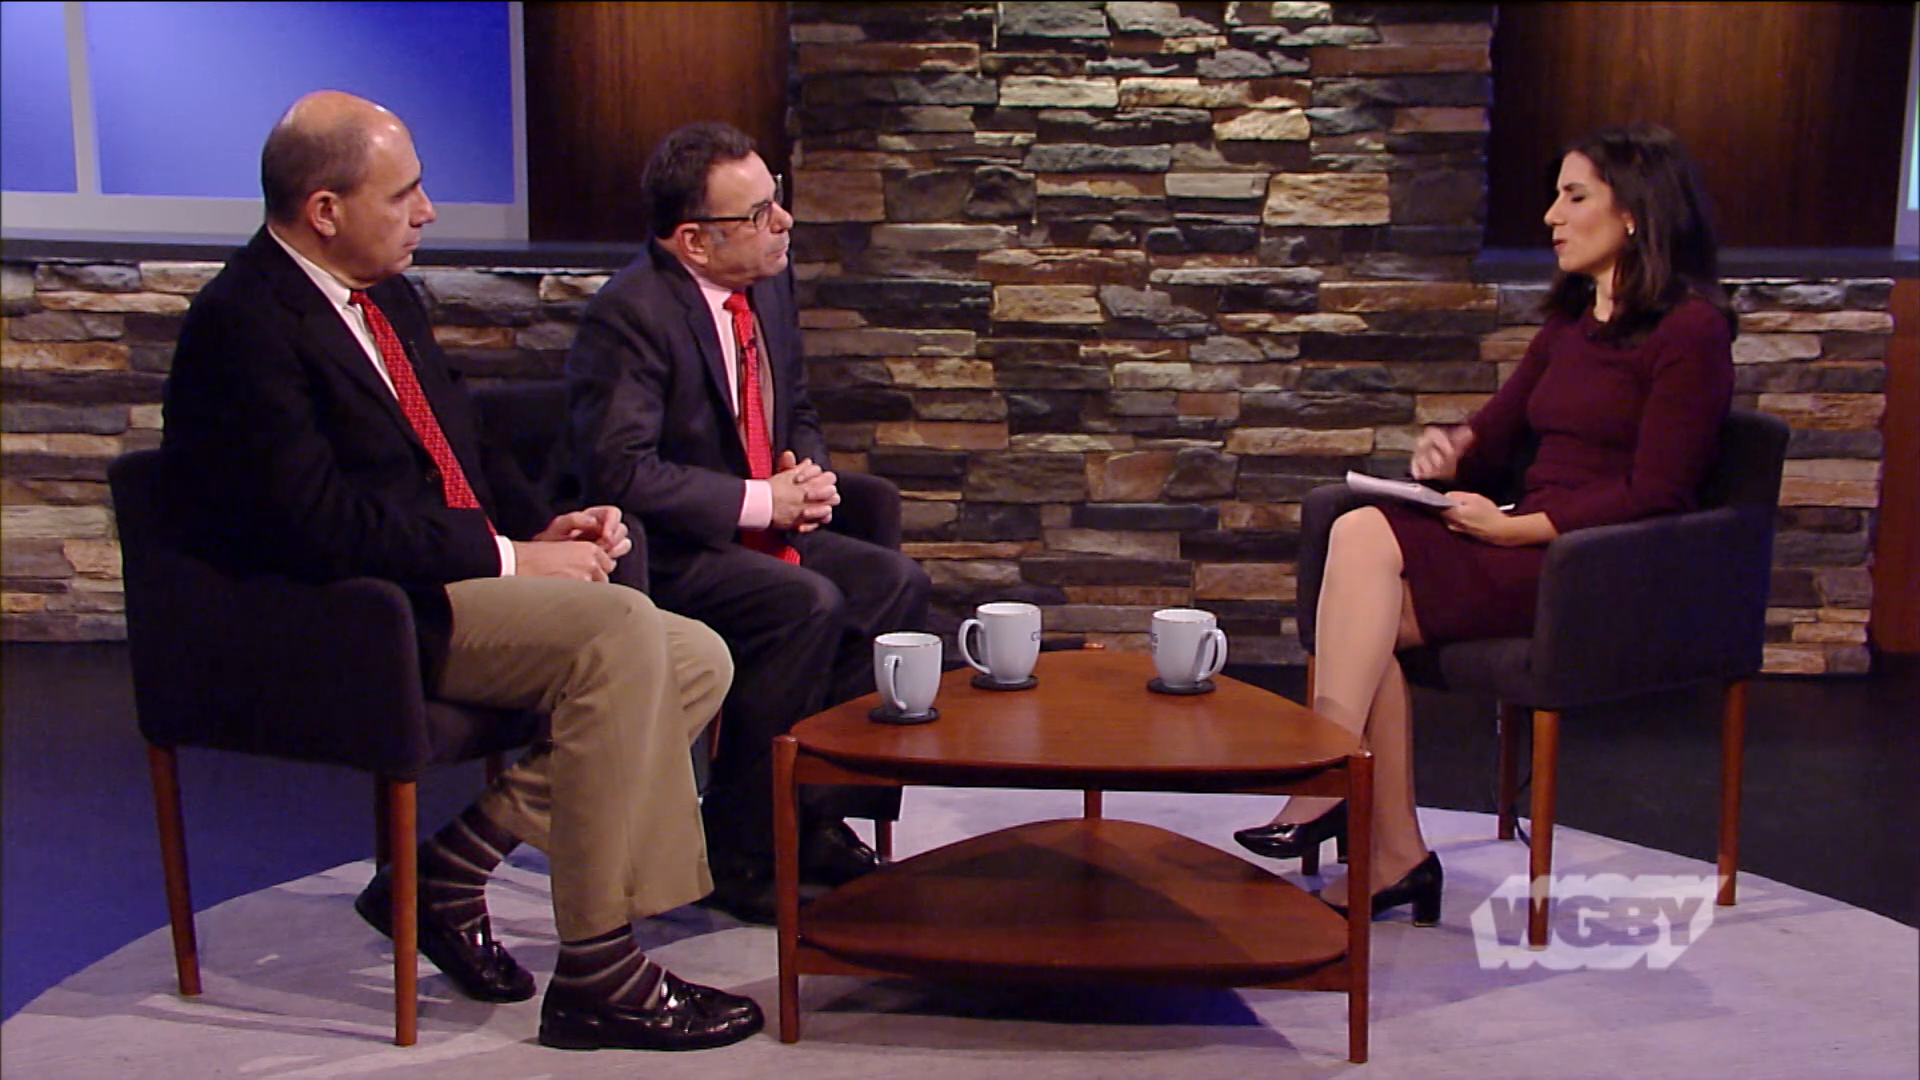 WATCH: Baystate Health's Dr. Aaron Kugelmass & Dr. Thomas Schwann speak about the latest procedures to help people with heart disease & how to prevent it.